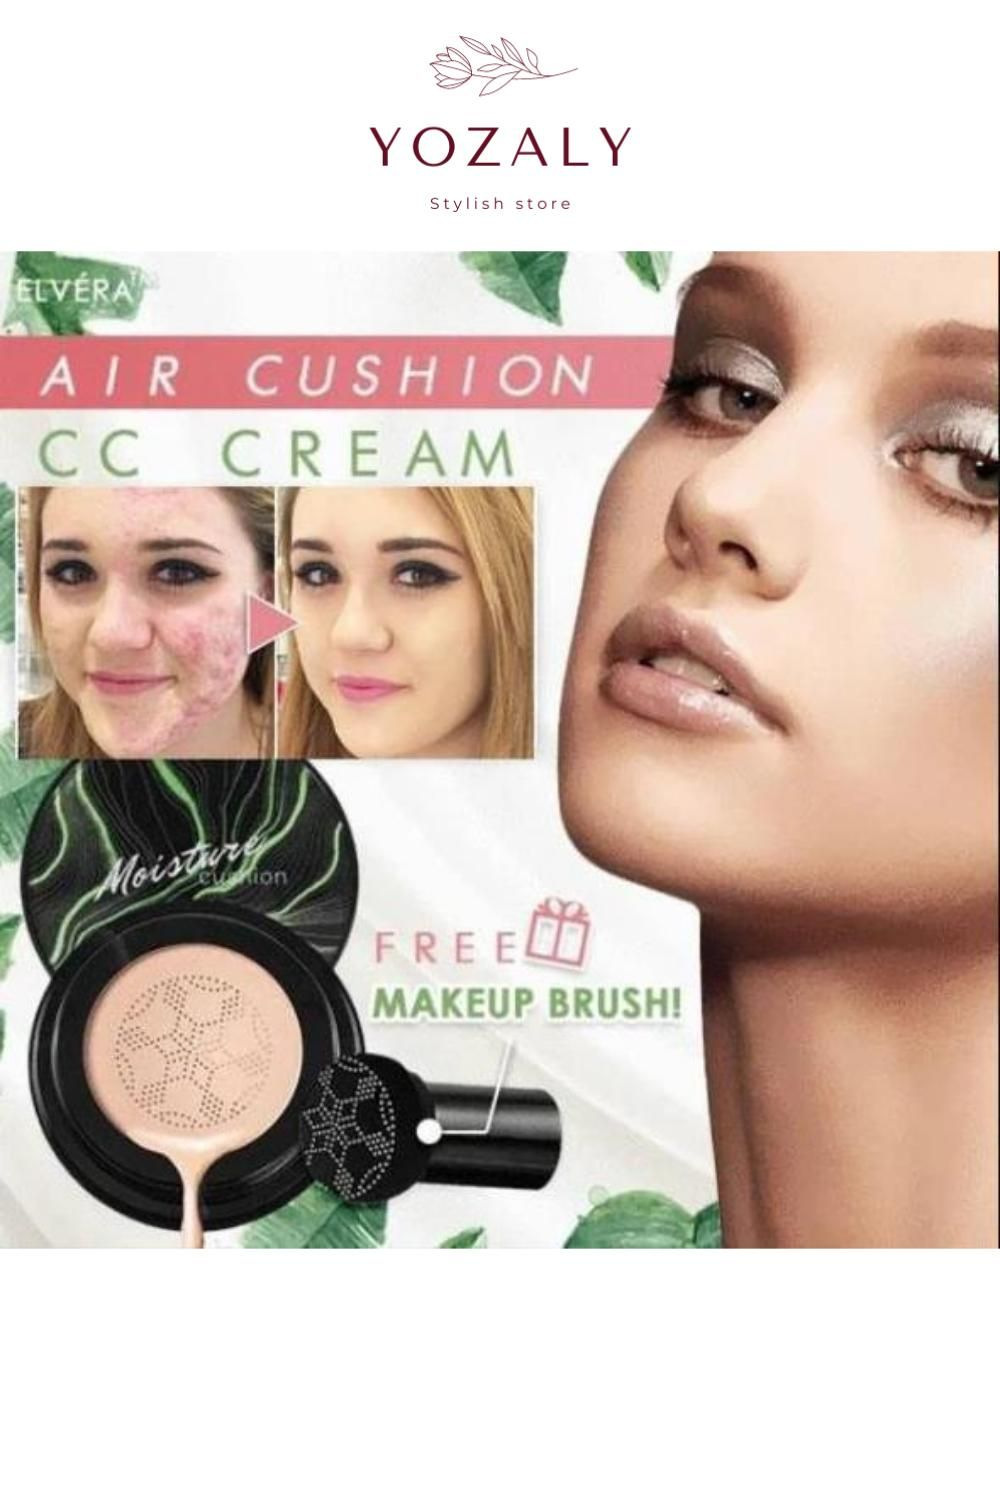 This CC cream can cover wrinkles, tattoos, age spo